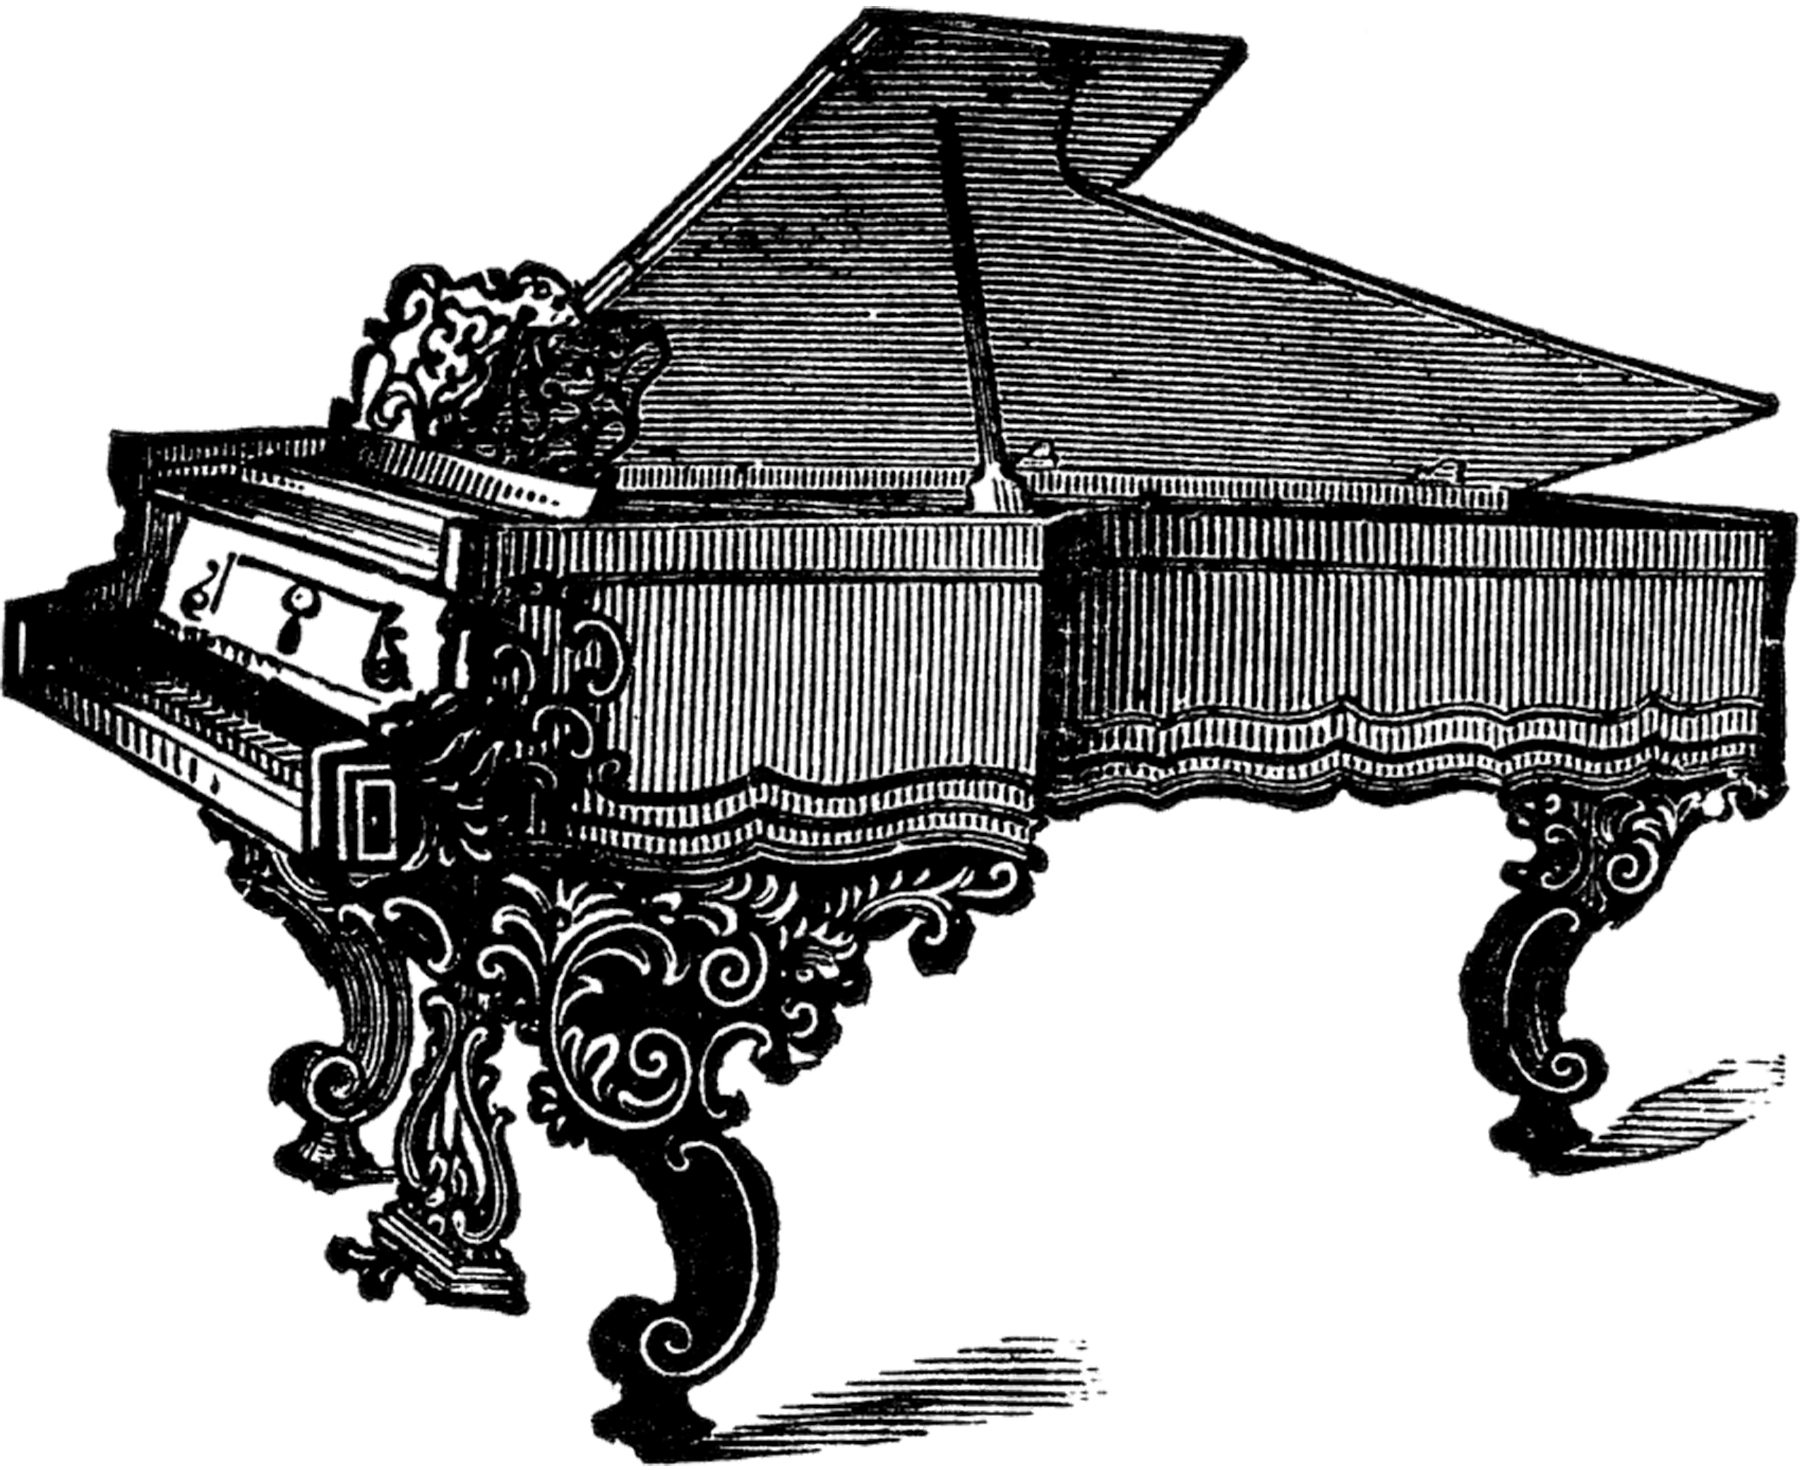 Vintage Grand Piano or Harpsichord Image!.